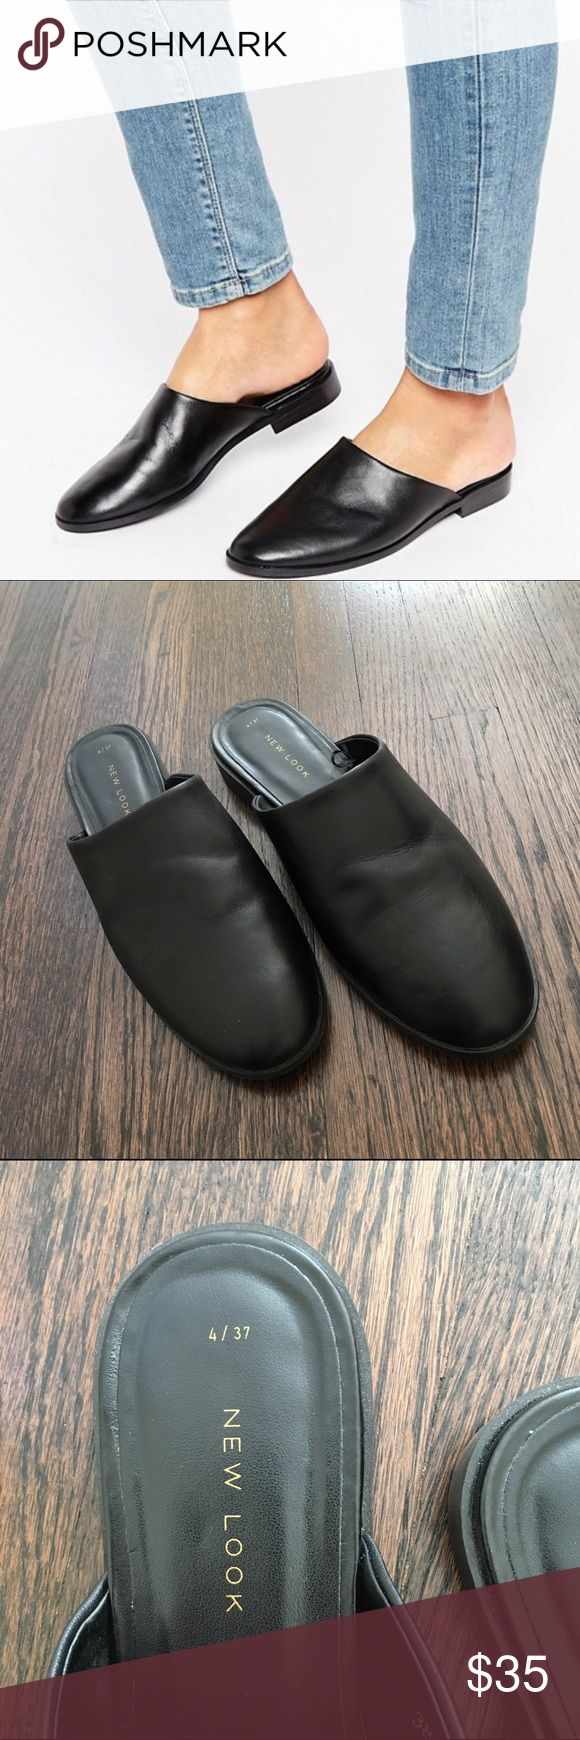 Black Leather Mules Black leather mules in excellent condition. Rarely worn. Top is real leather. ASOS Shoes Mules & Clogs